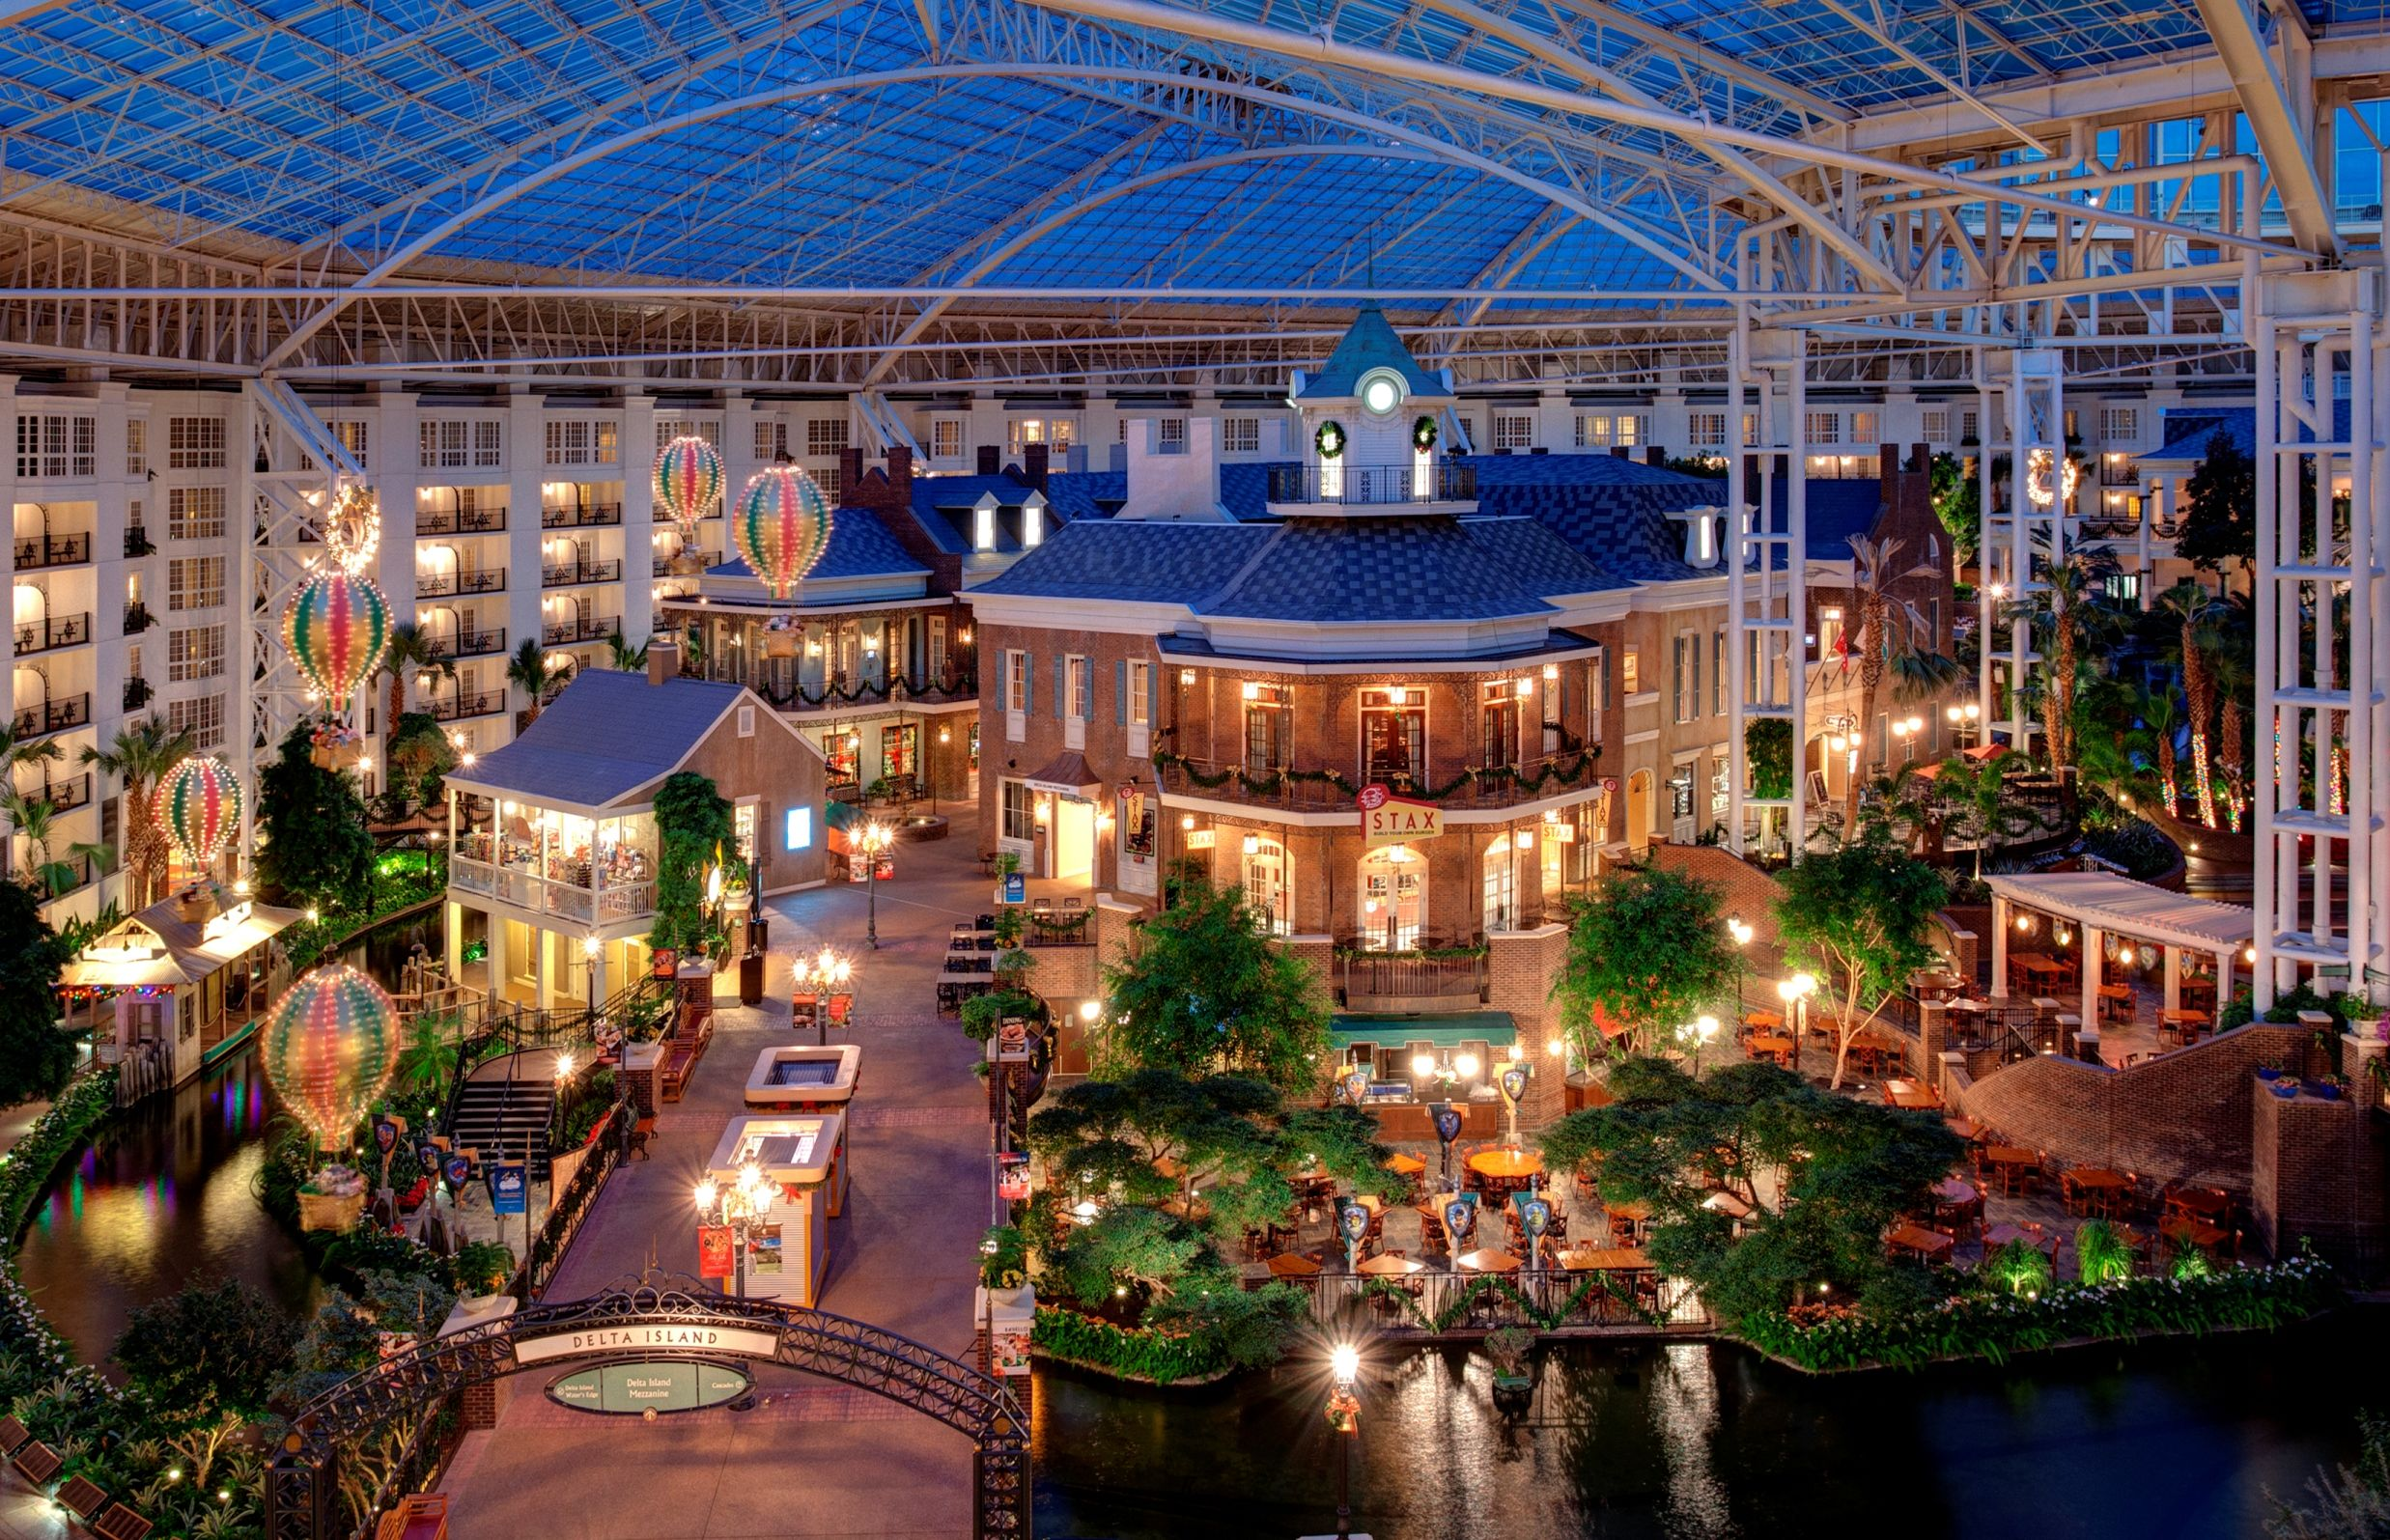 Opryland Hotel - Nashville Tennessee Southern Charm